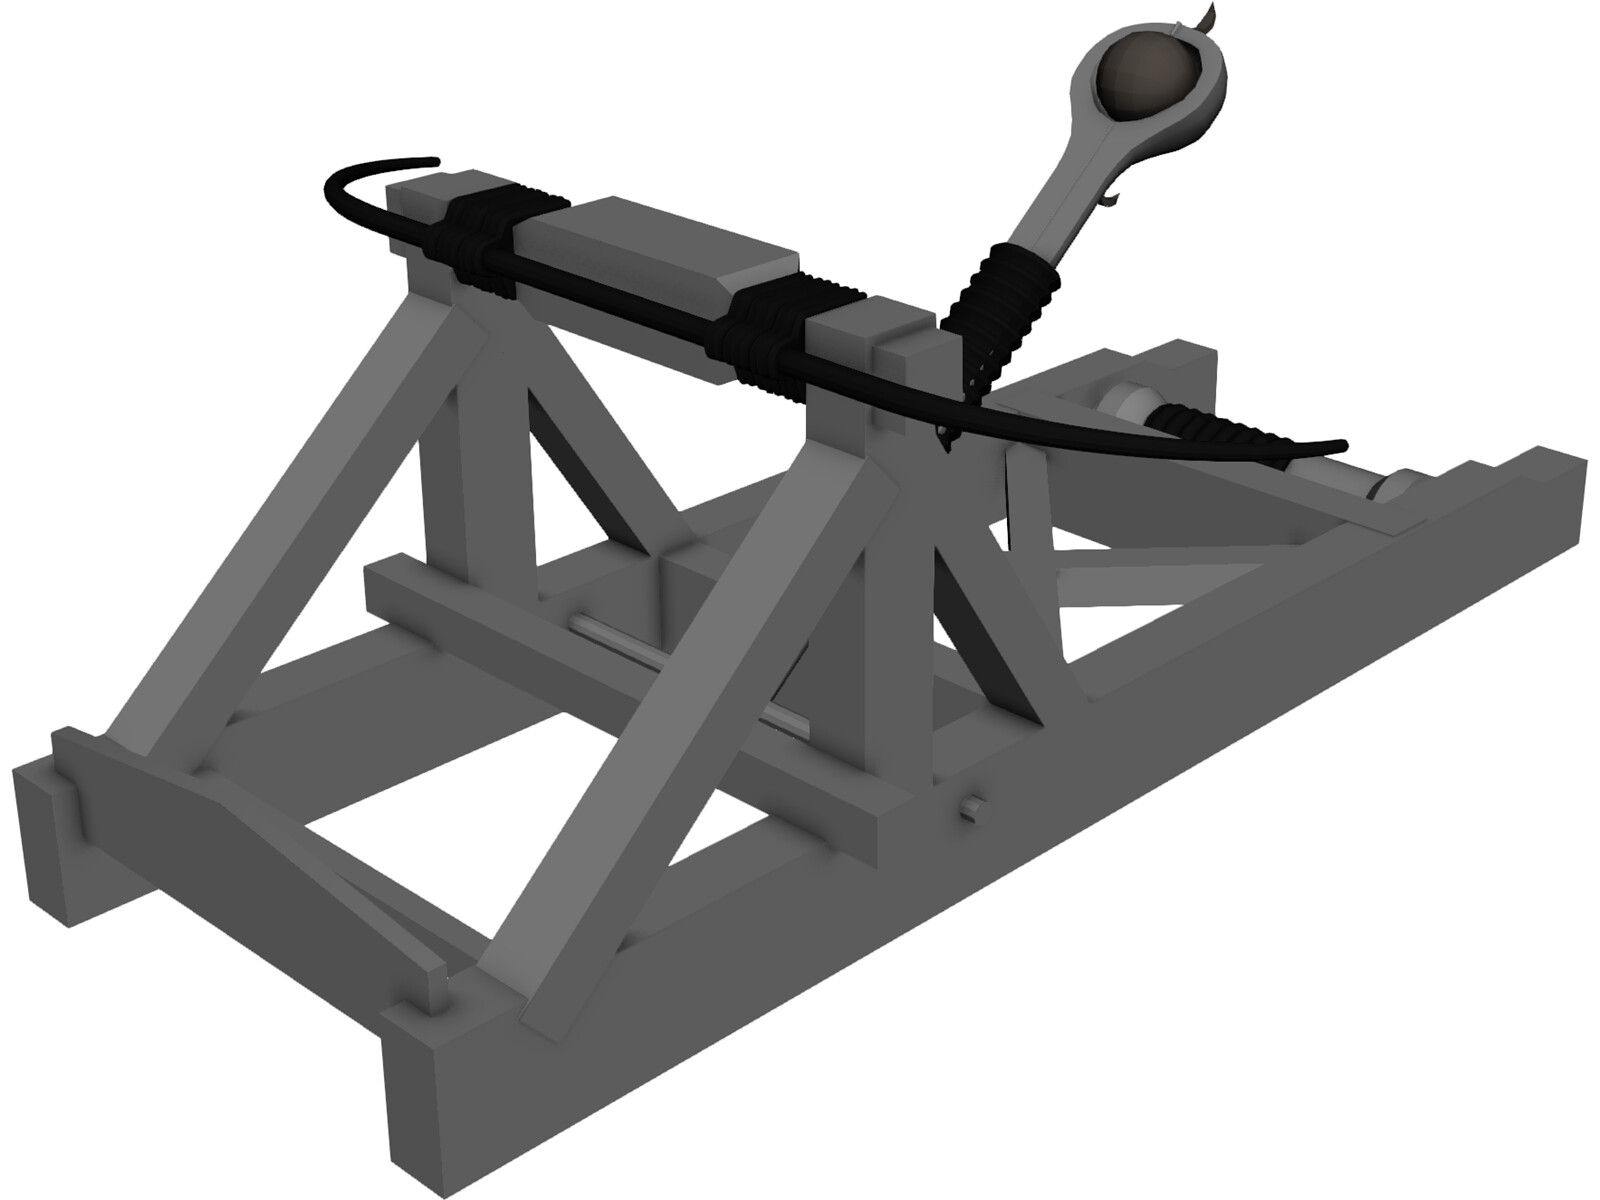 Why were catapults invented?